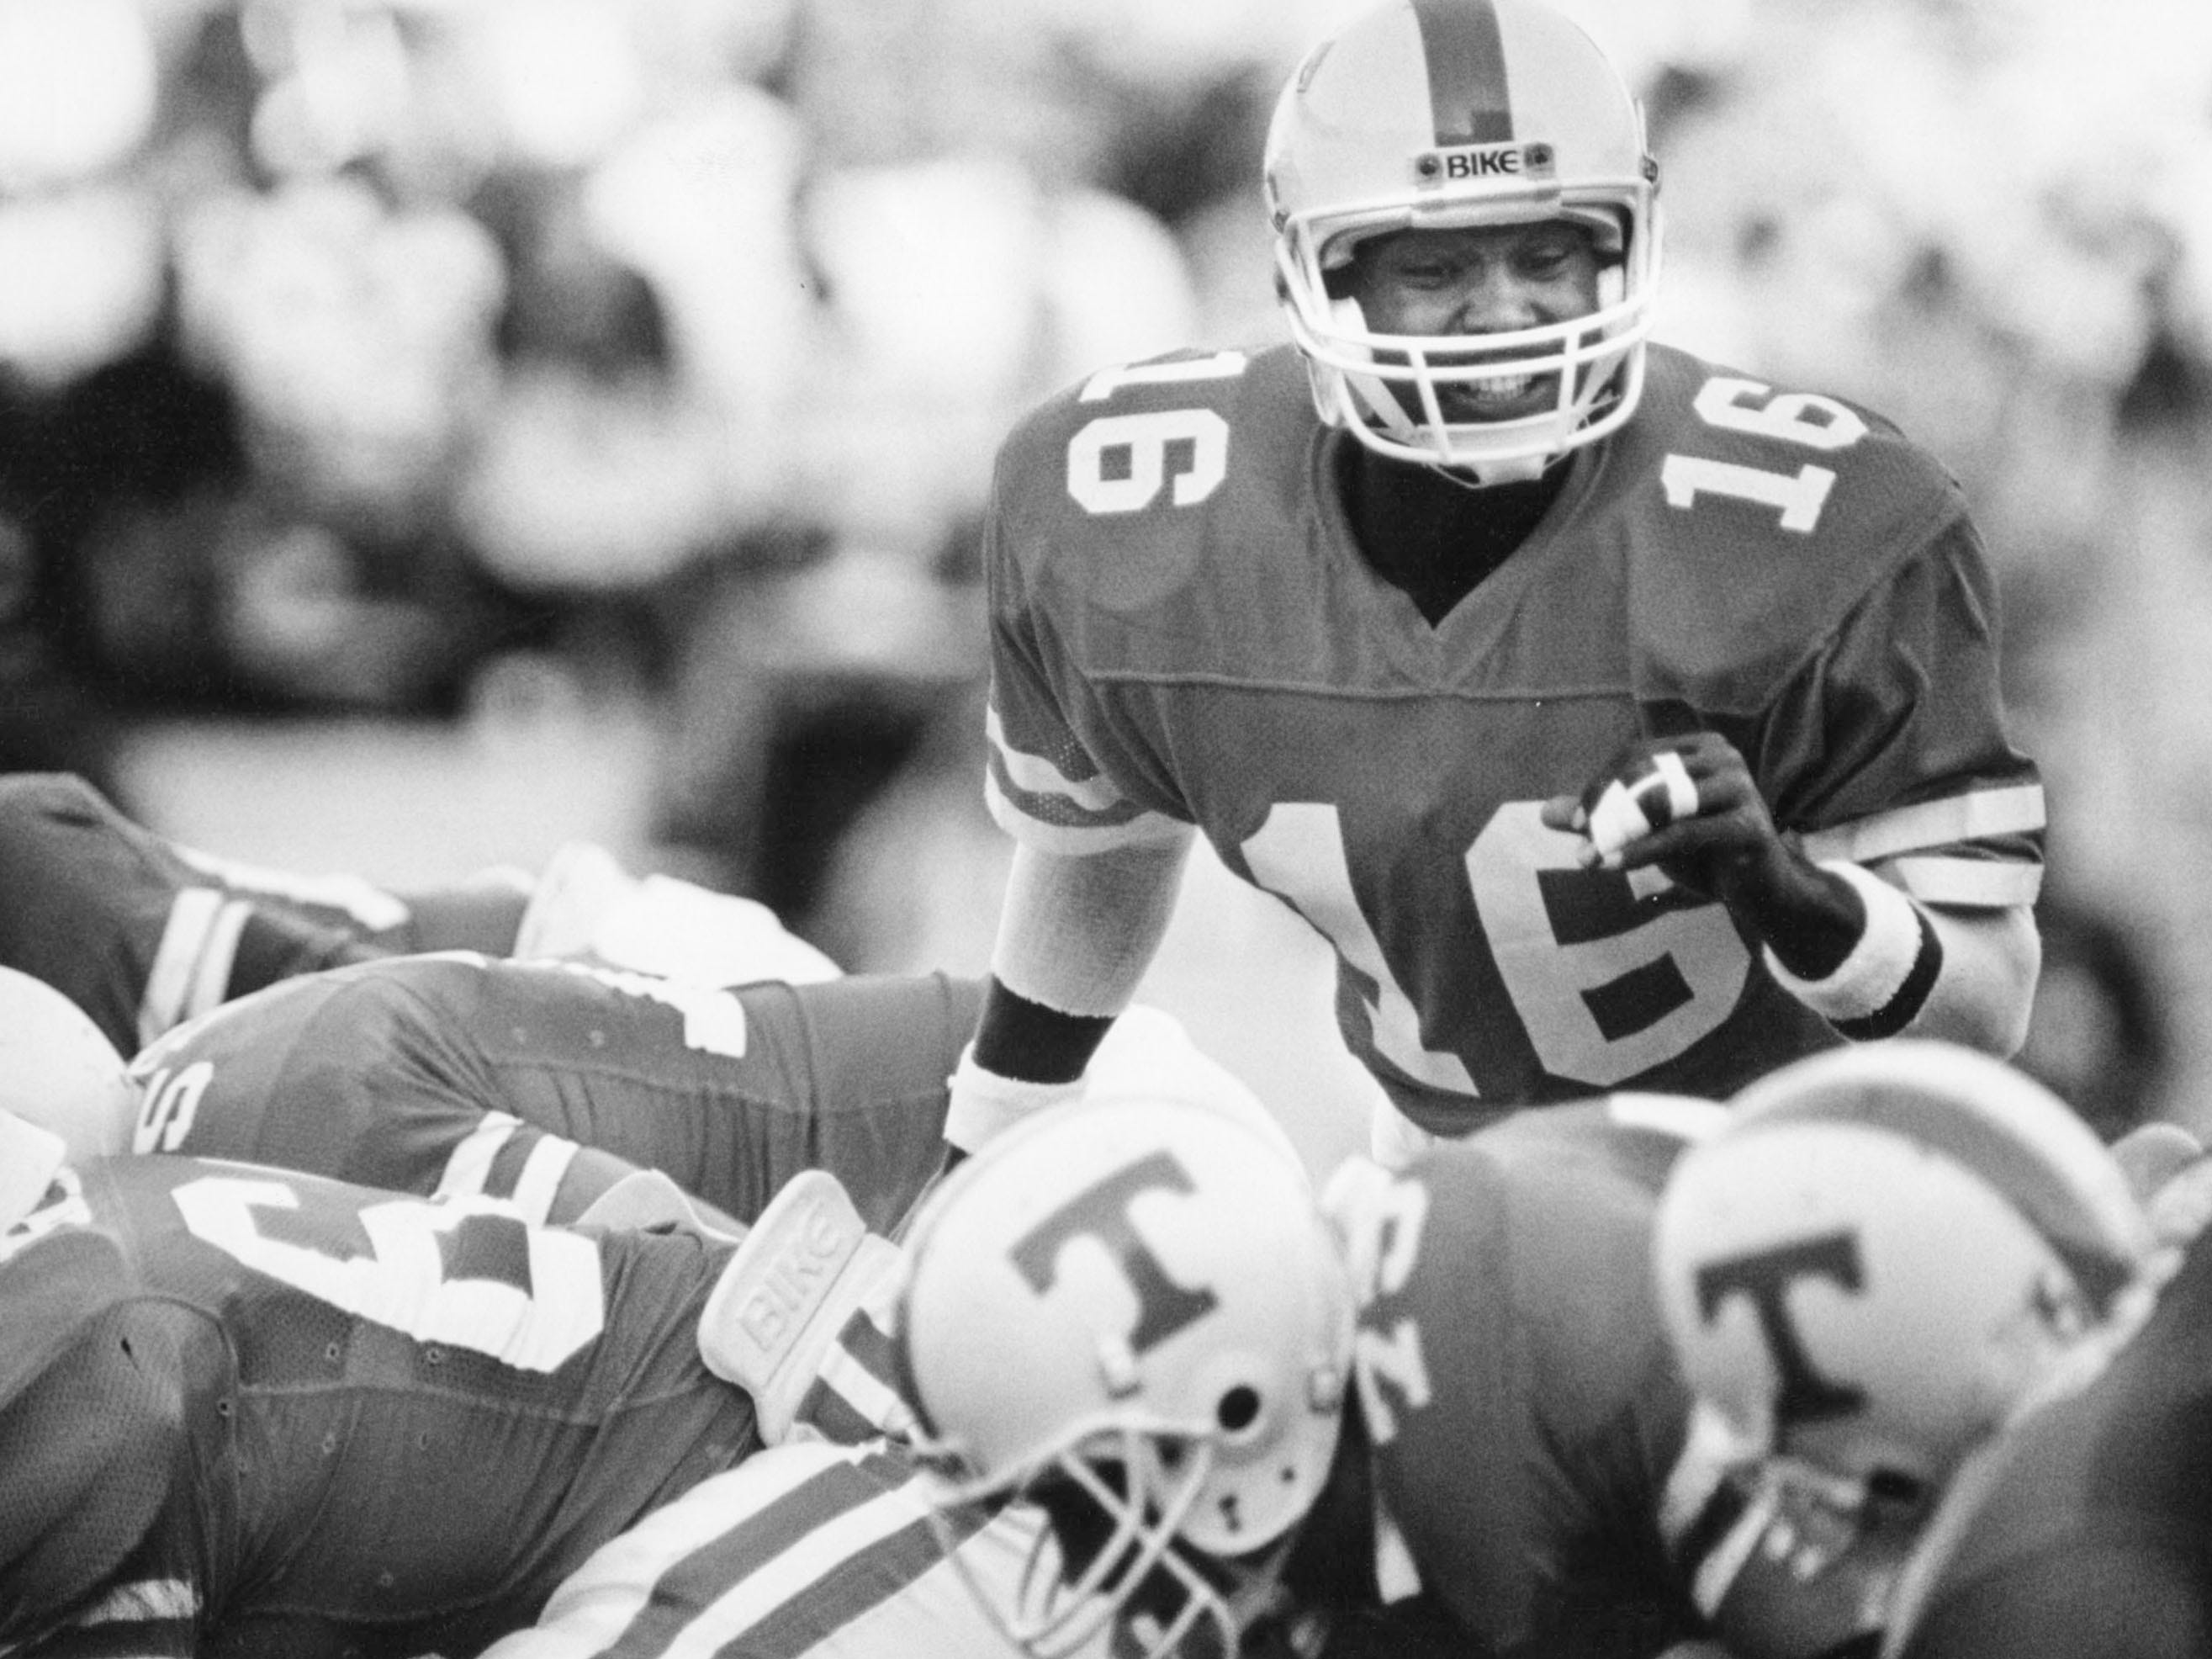 Sterling Henton during the game against Ole Miss in 1987.